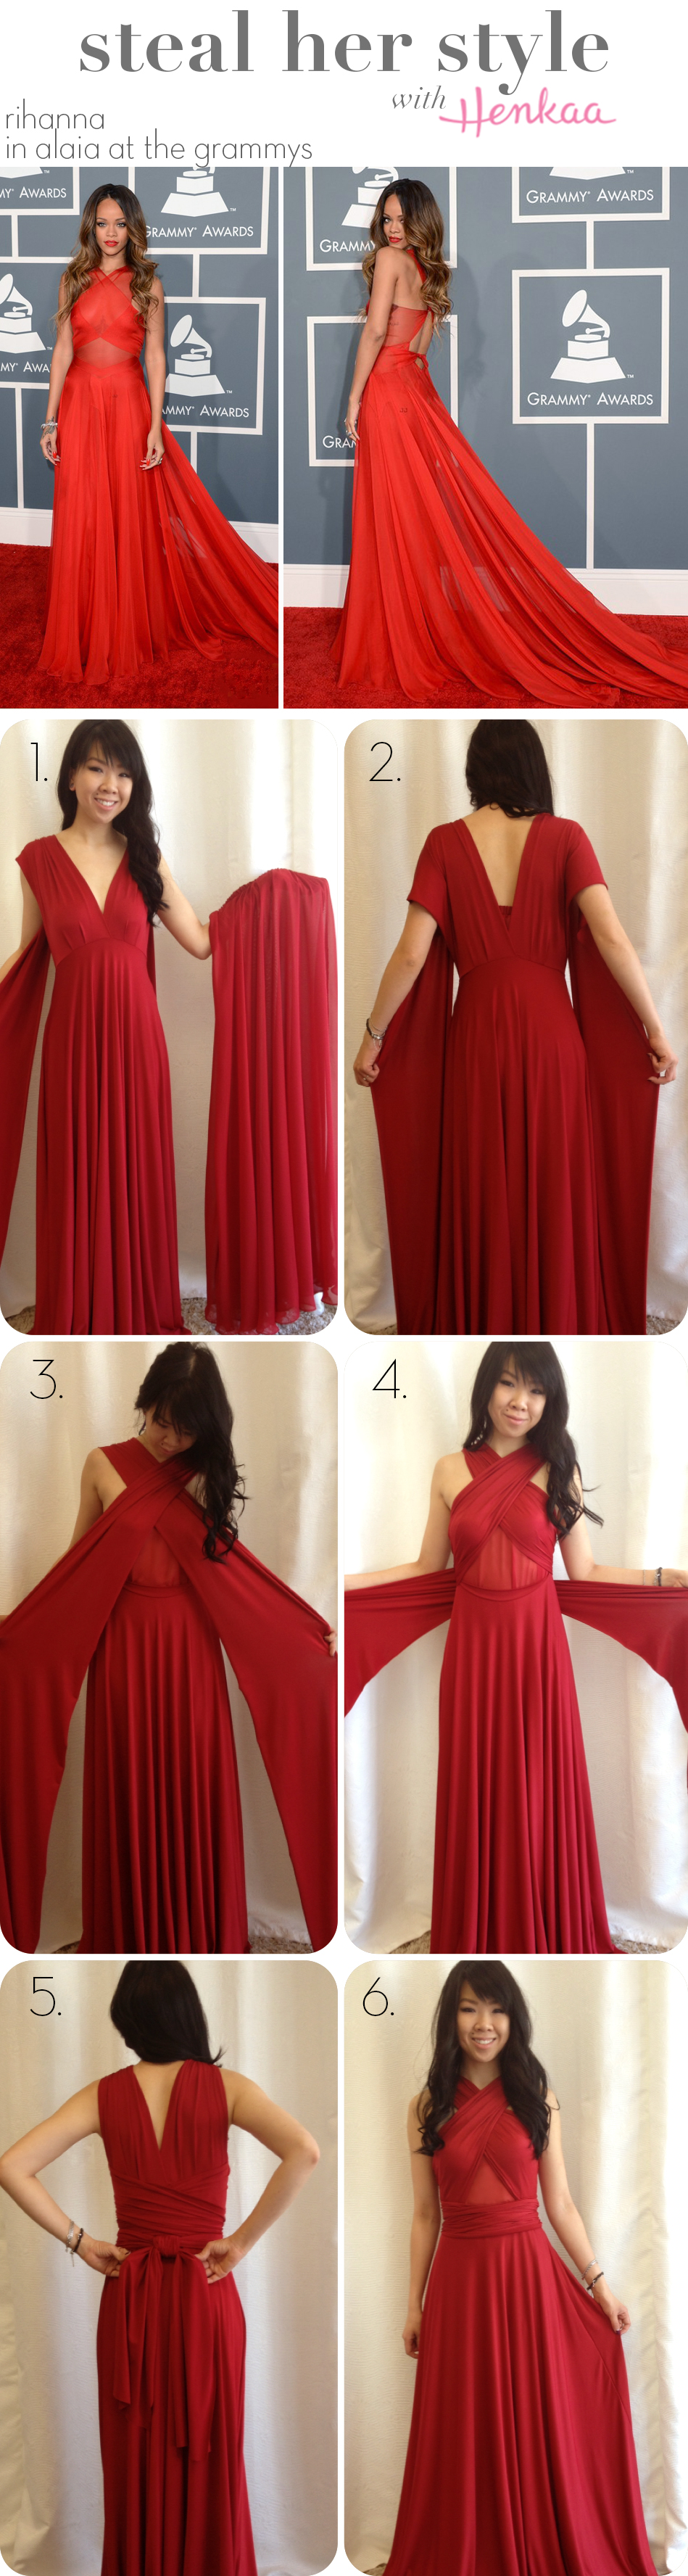 how to dress like Rihanna - how to get a red carpet look - infinity dress on the red carpet